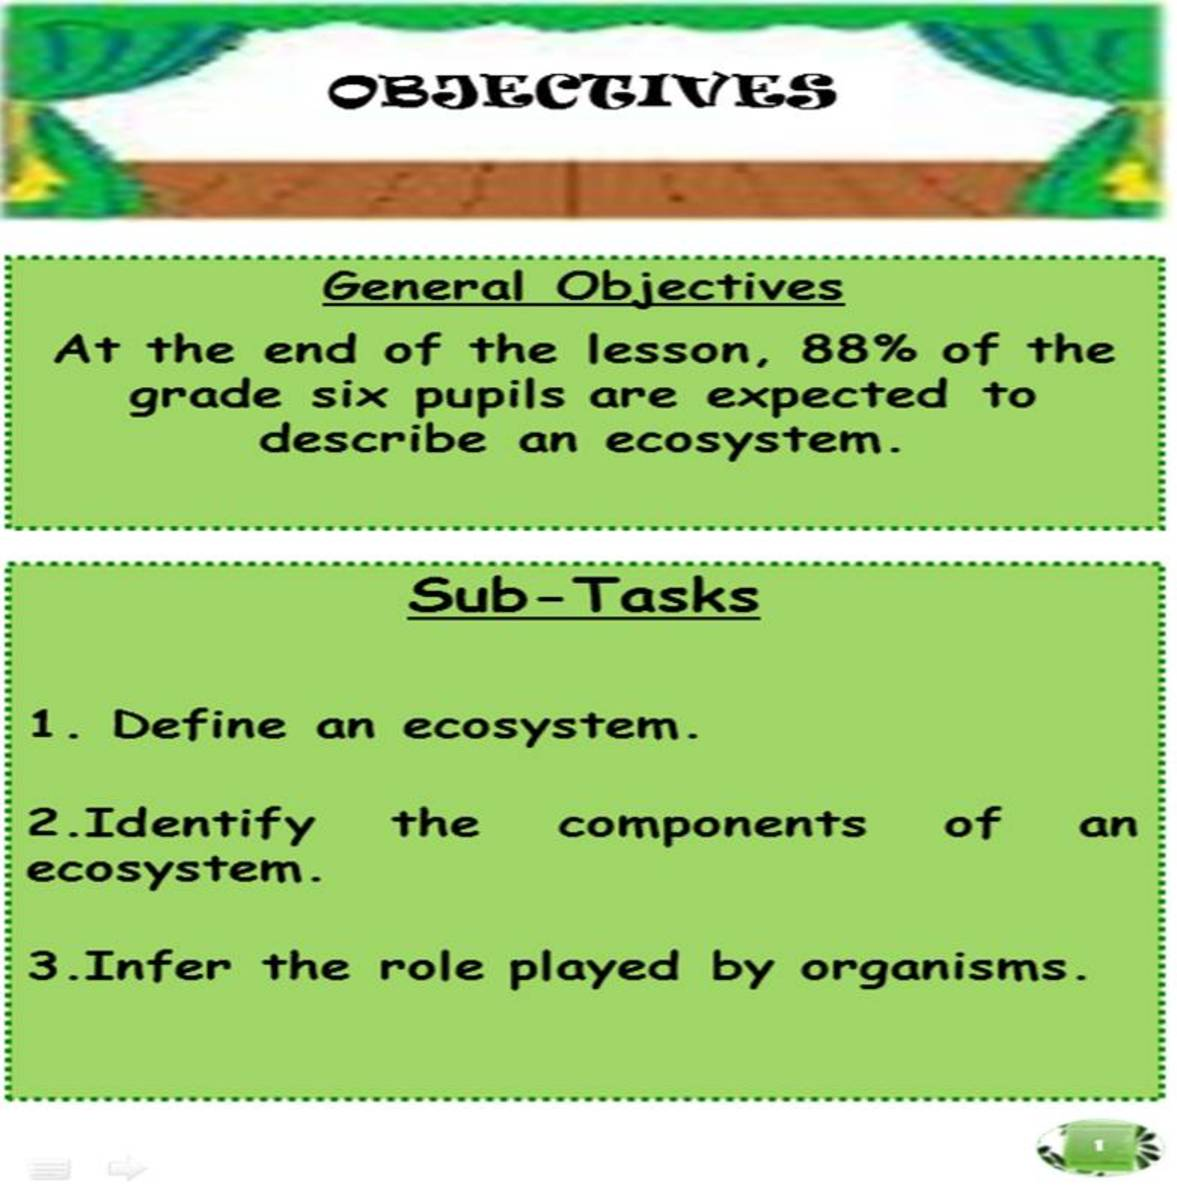 Teaching objectives must be cleared to the students as well.